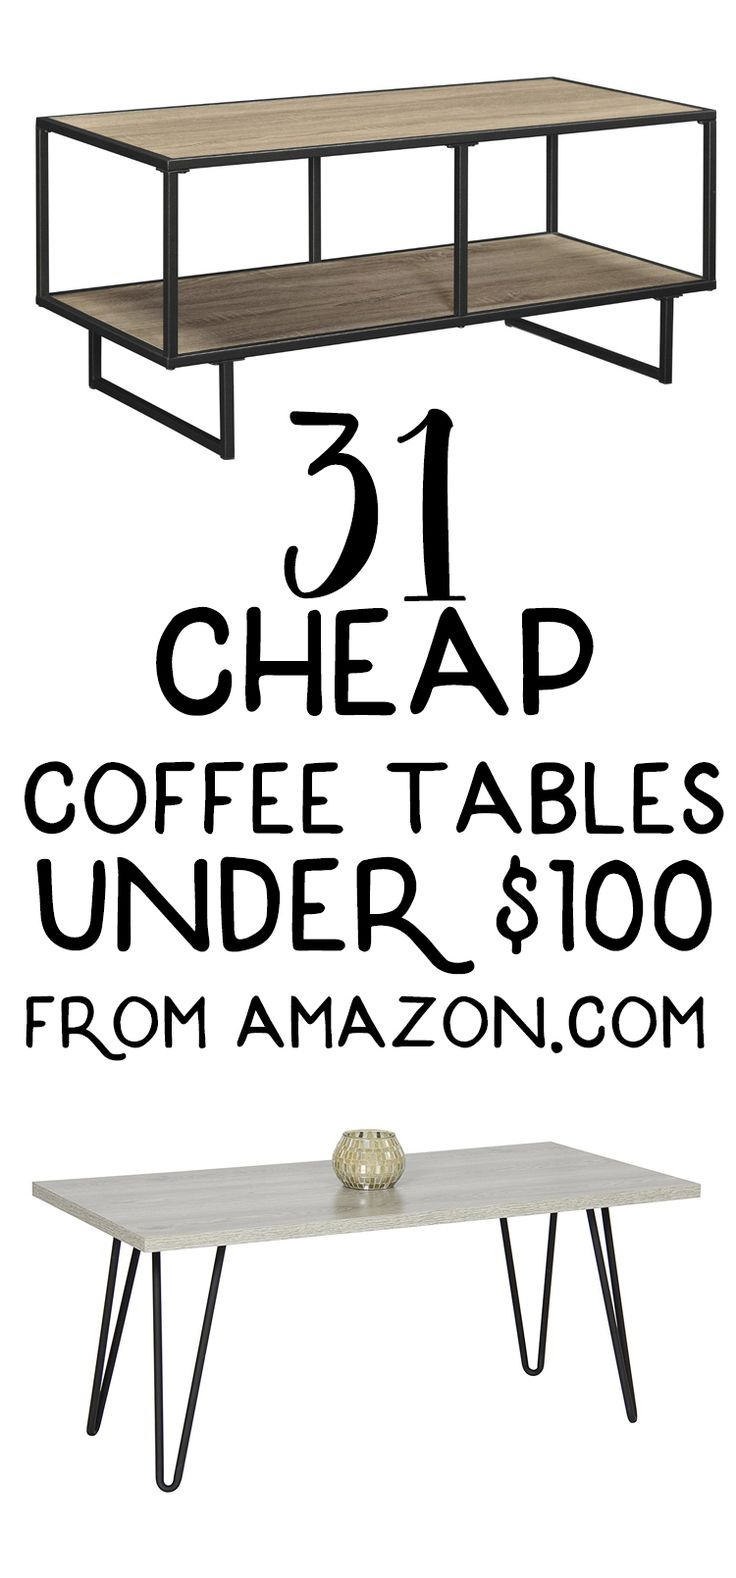 17 Best Ideas About Coffee Table Storage On Pinterest Crate Table Diy Coffee Table And Coffee